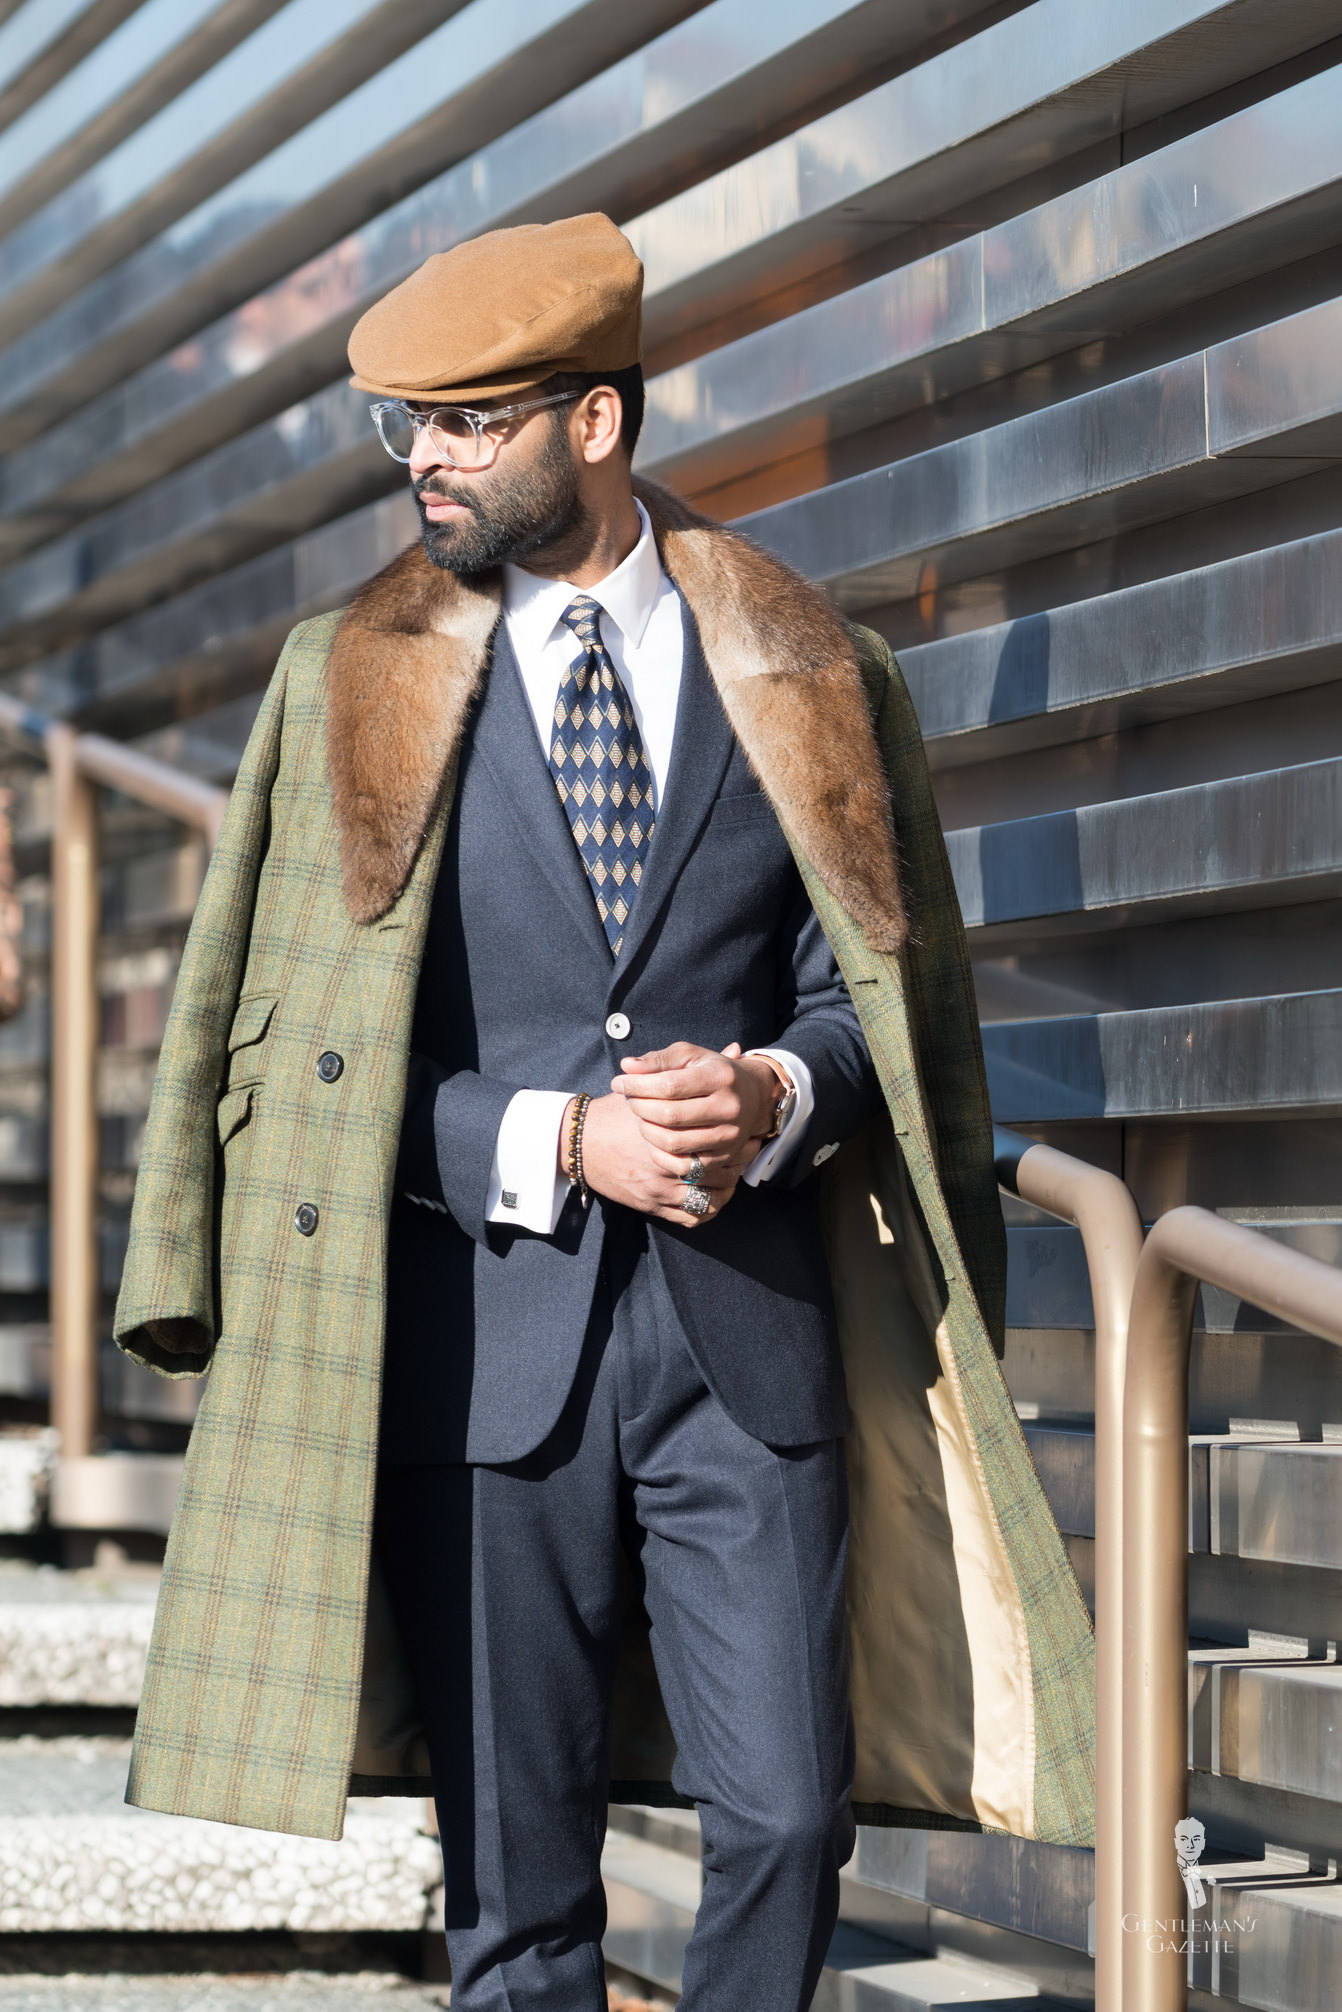 NEW MENS NAVY BLUE 3//4 LENGTH WOOL OVERCOAT WARM WINTER COAT CROMBY STYLE